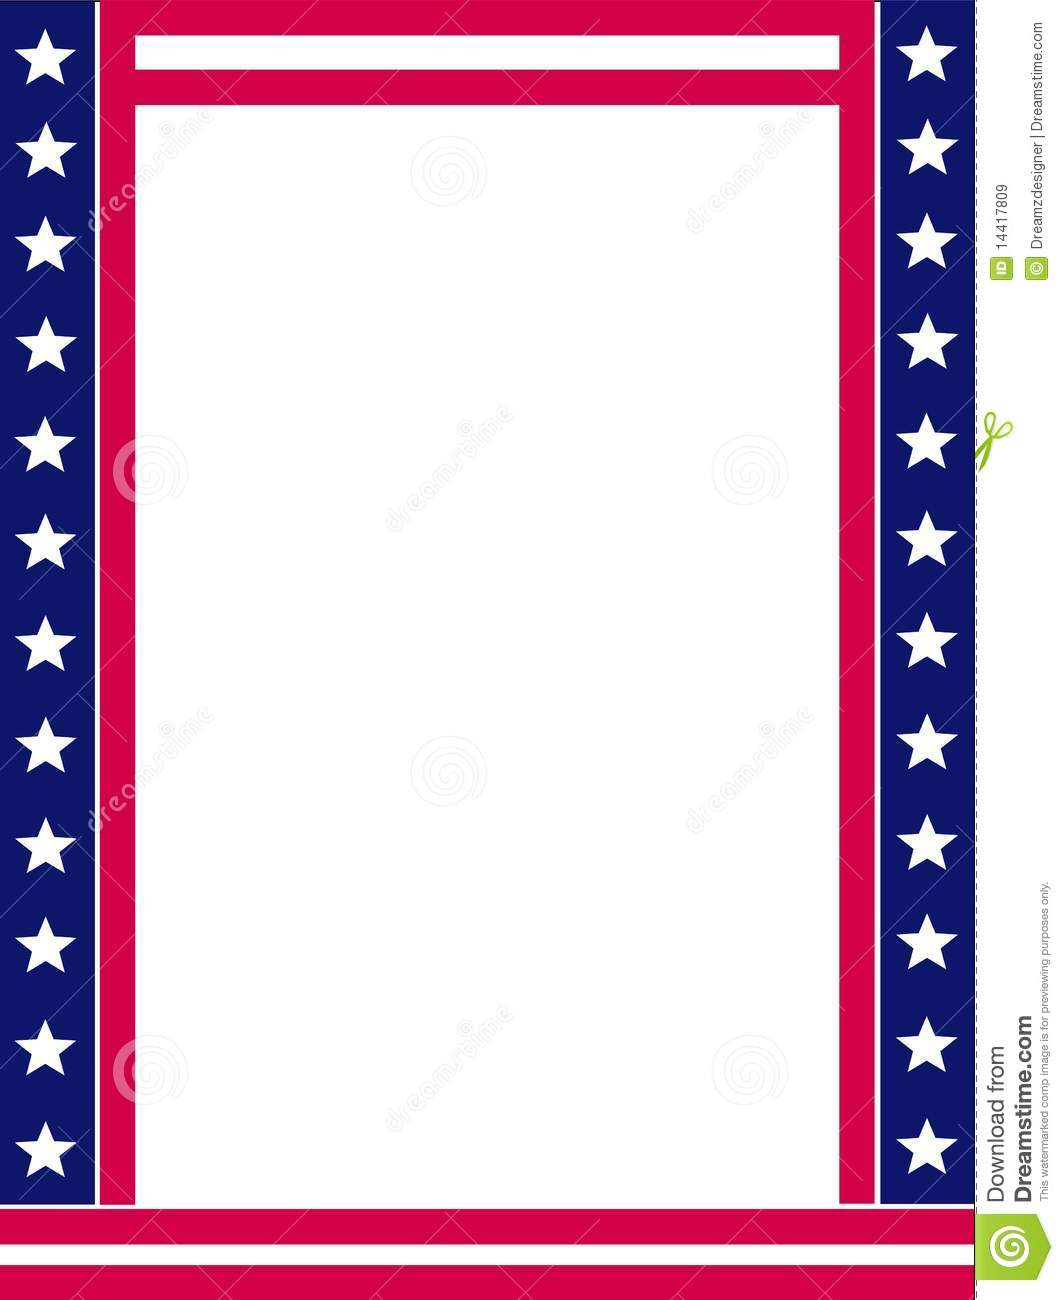 Patriotic Border Royalty Free Stock Images - Image: 14417809